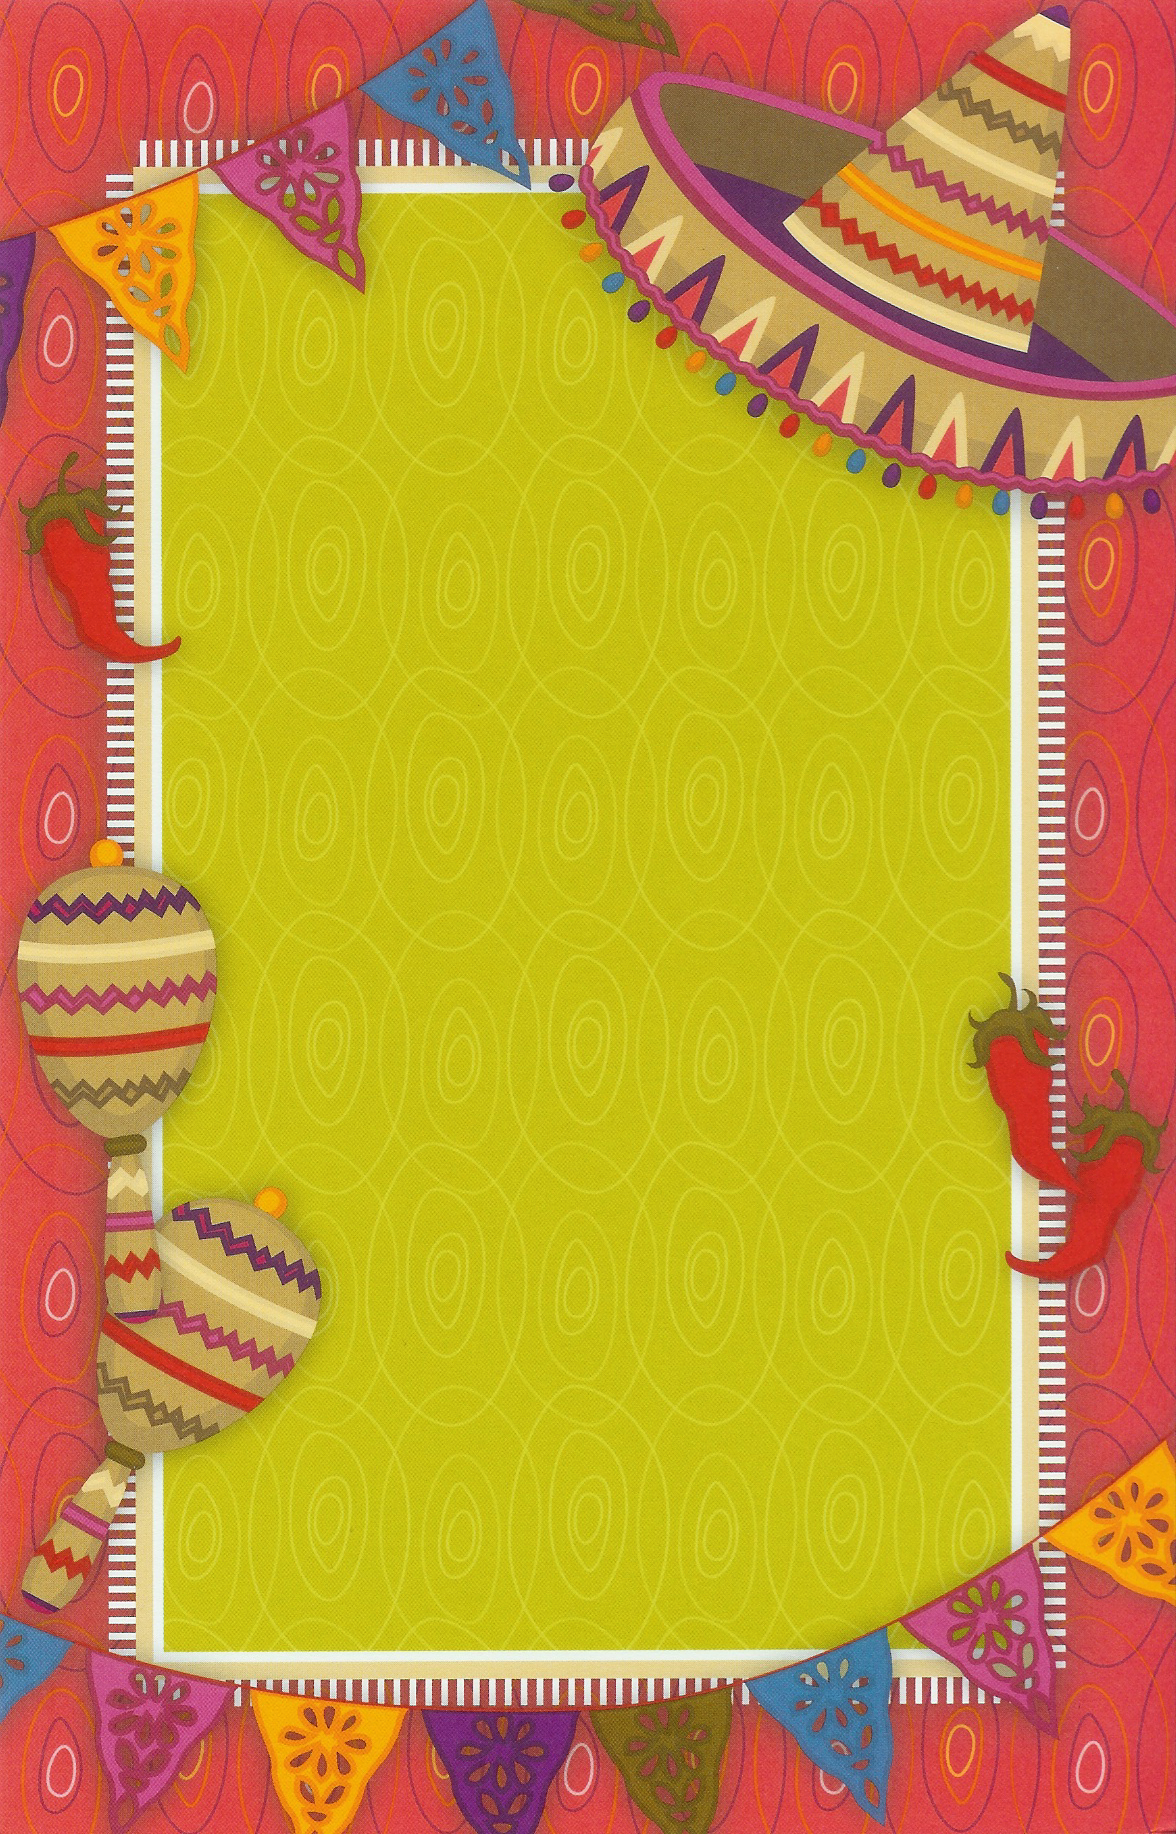 Hot Fiesta Invitation Cards And Free Printable Fiesta Party - Free Printable Fiesta Invitations